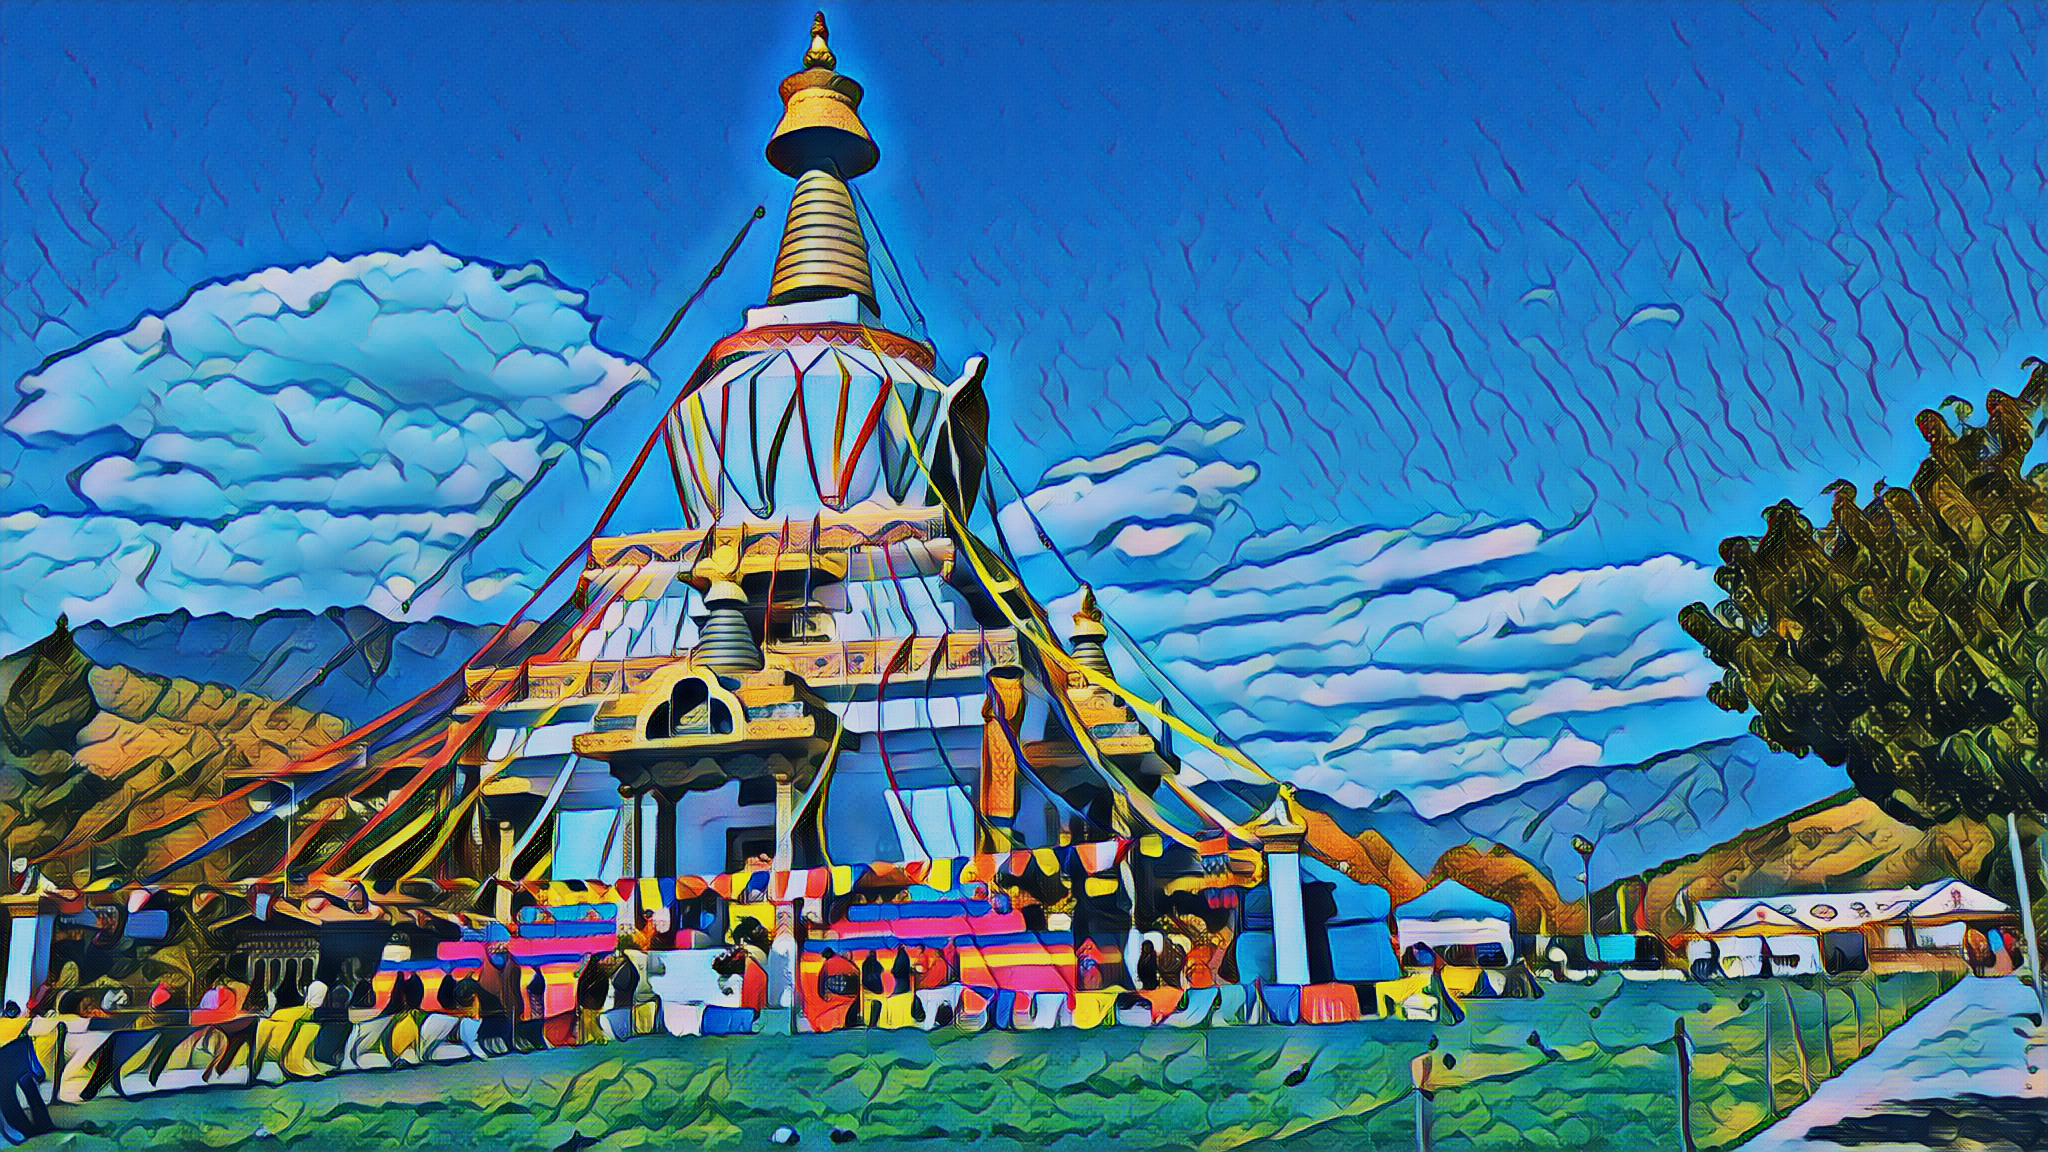 Deep neural network paintings of the Land of the Thunder Dragon